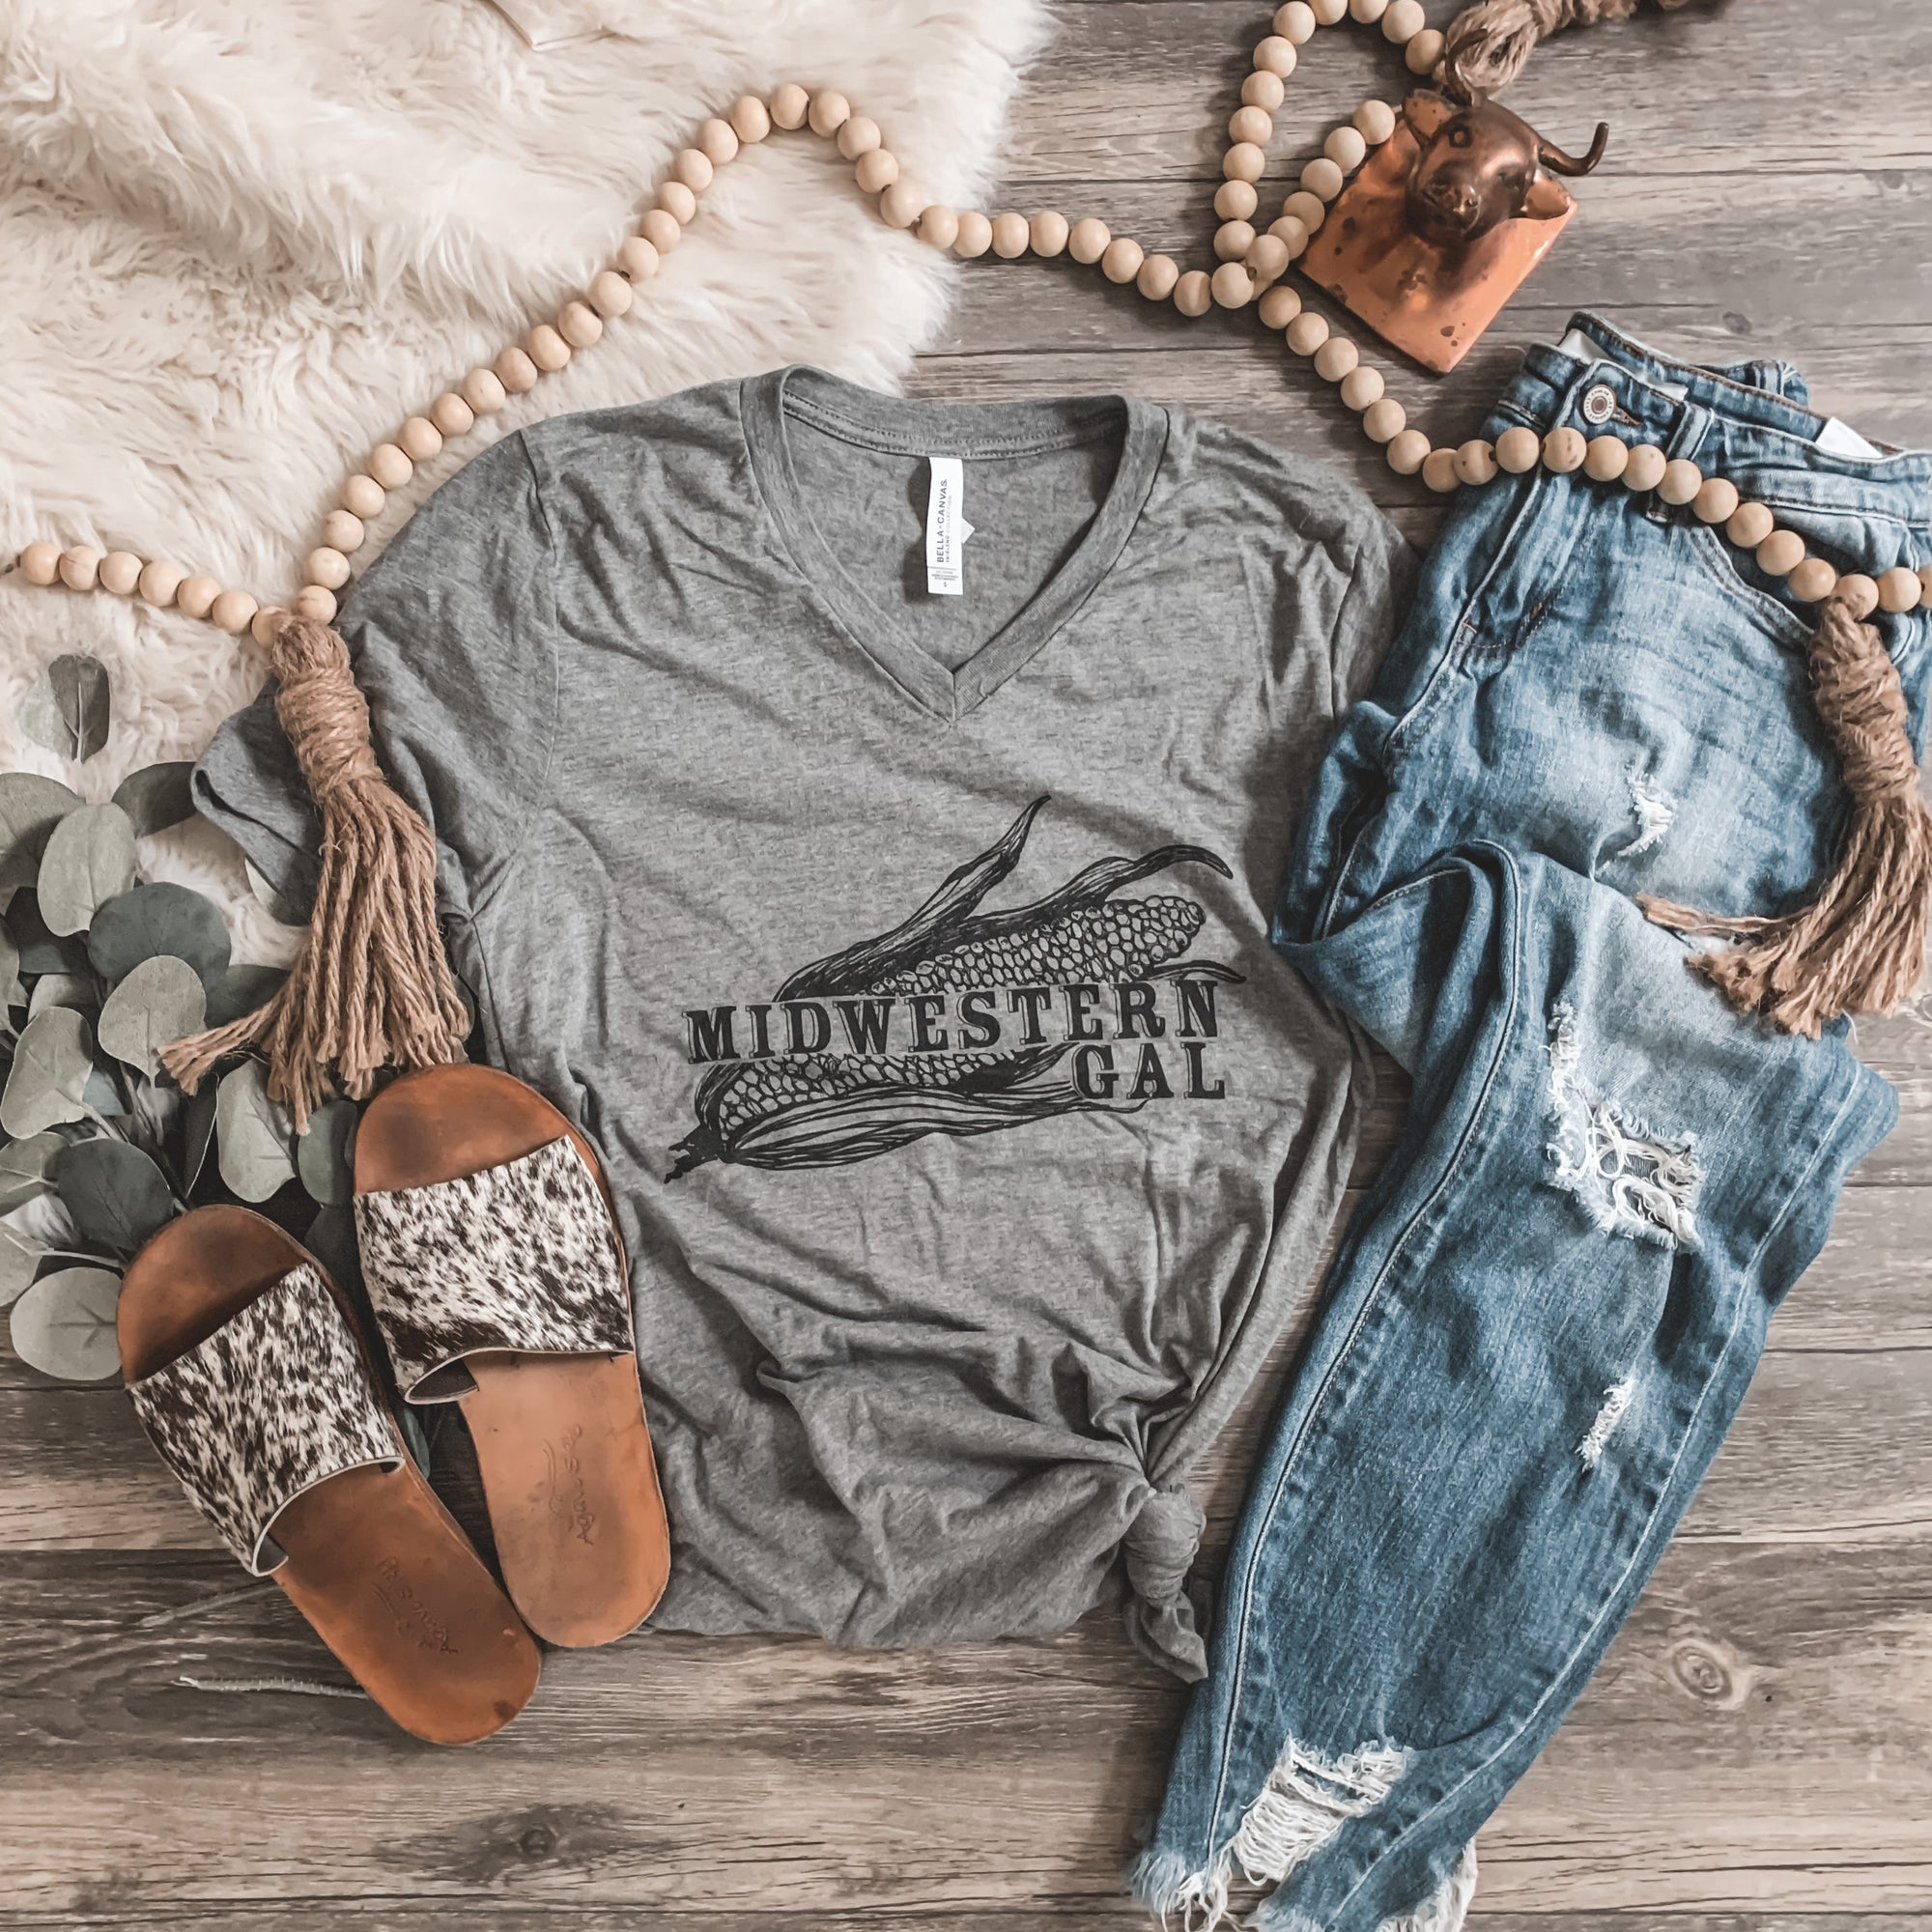 """Midwestern Gal"" V - Neck Graphic Tee in Gray - Rosebud's Tees"